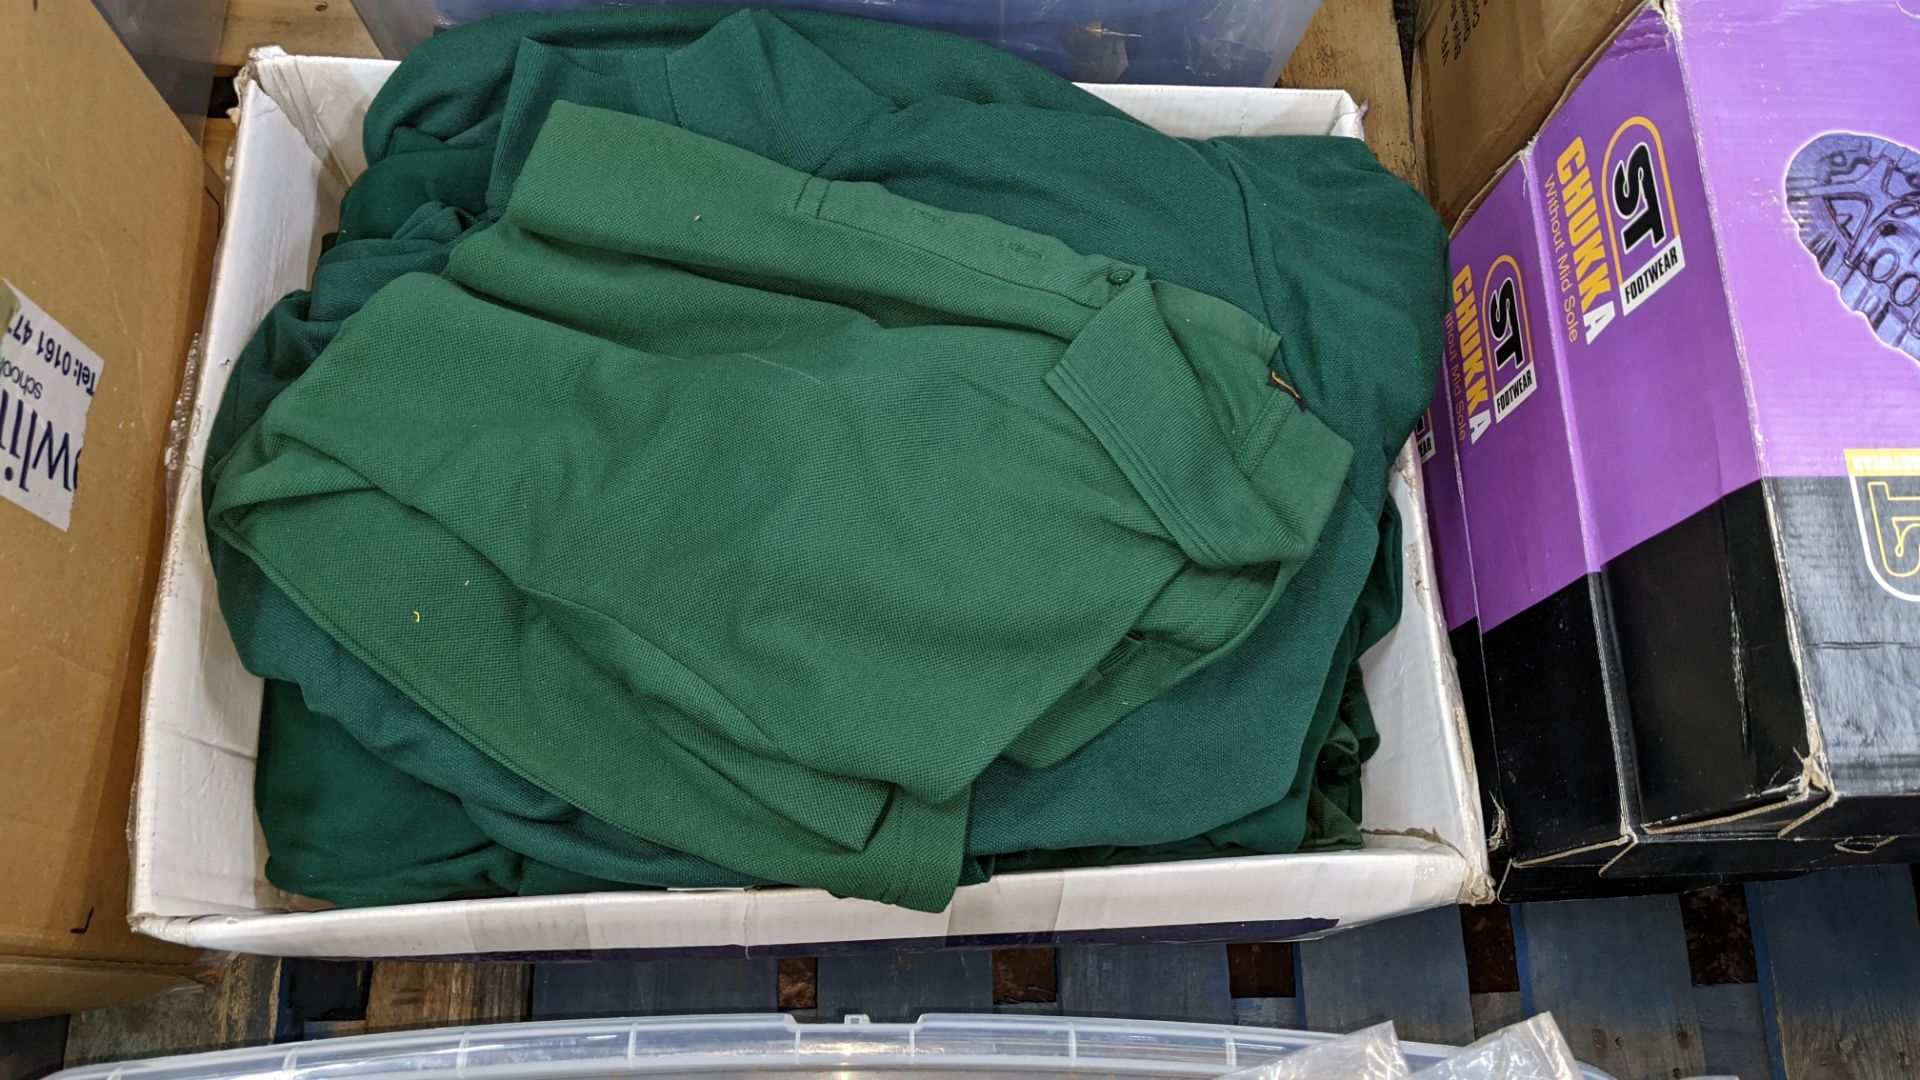 Approx 80 off green polo shirts & sweatshirts - the contents of 2 boxes/crates. NB boxes/crates exc - Image 5 of 6